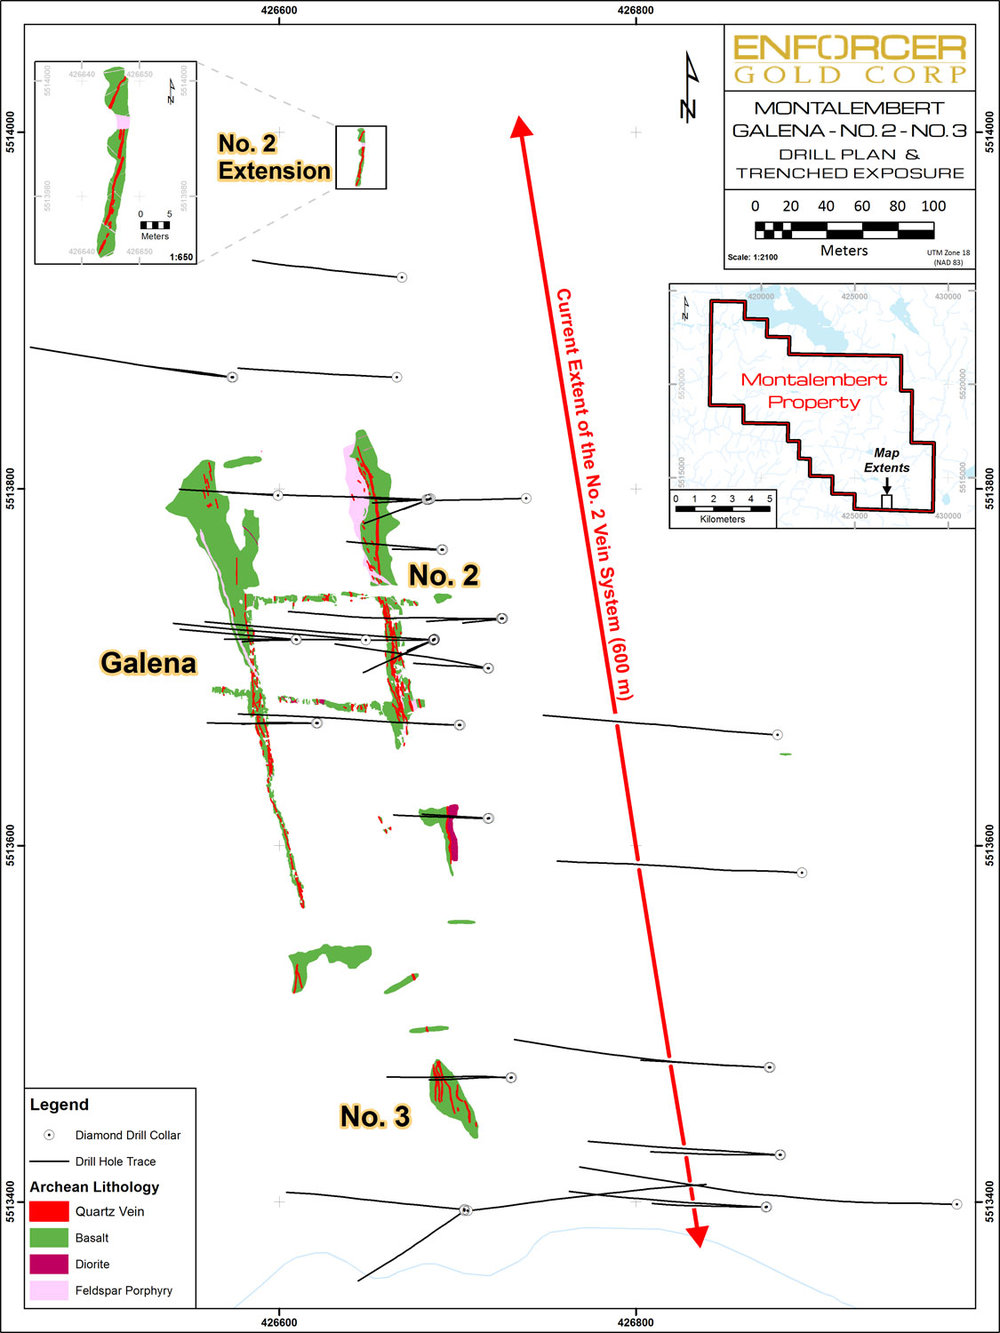 Drill Plan and Trenched Exposure